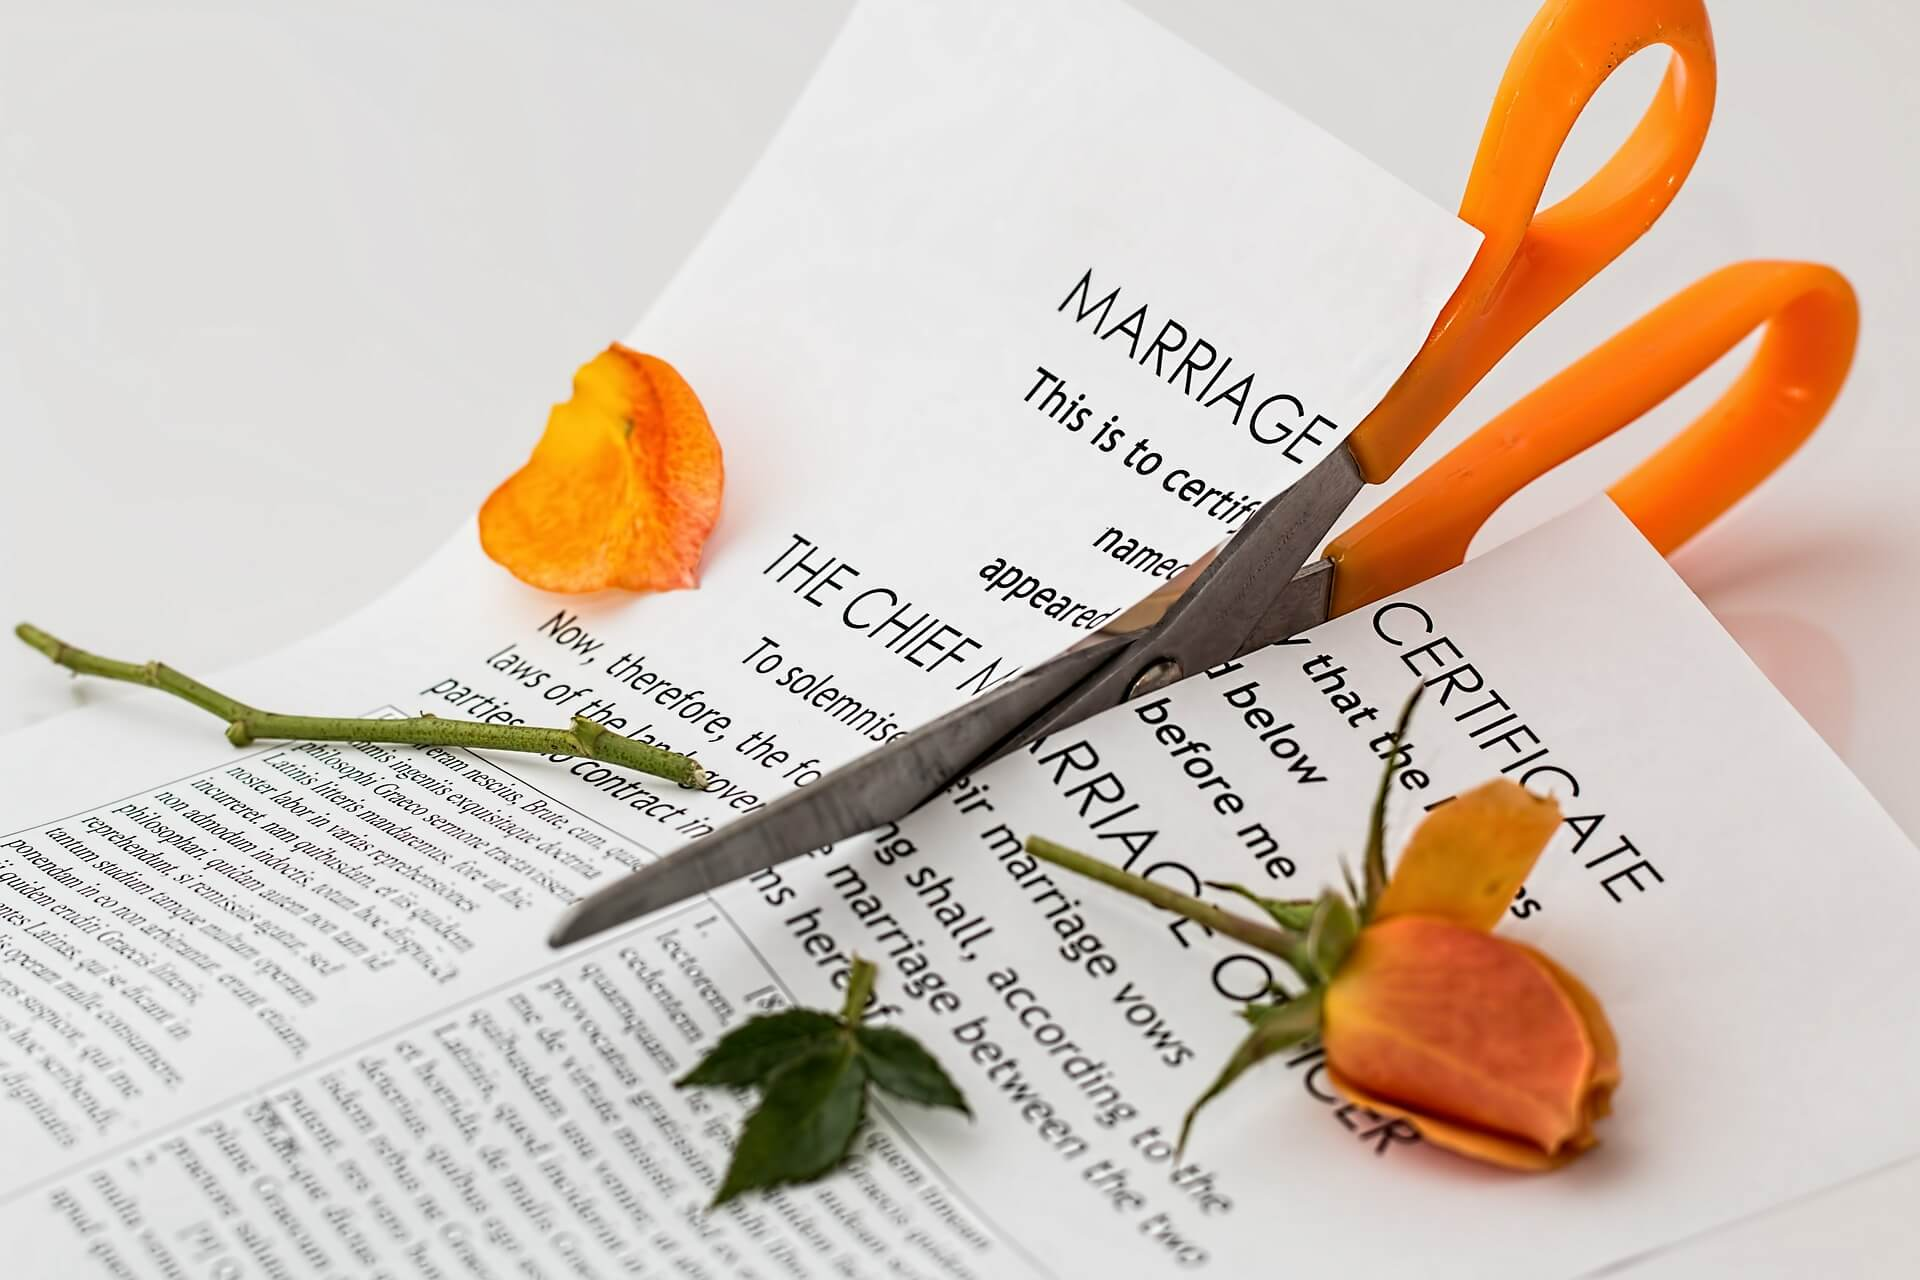 Cutting up a marriage certificate